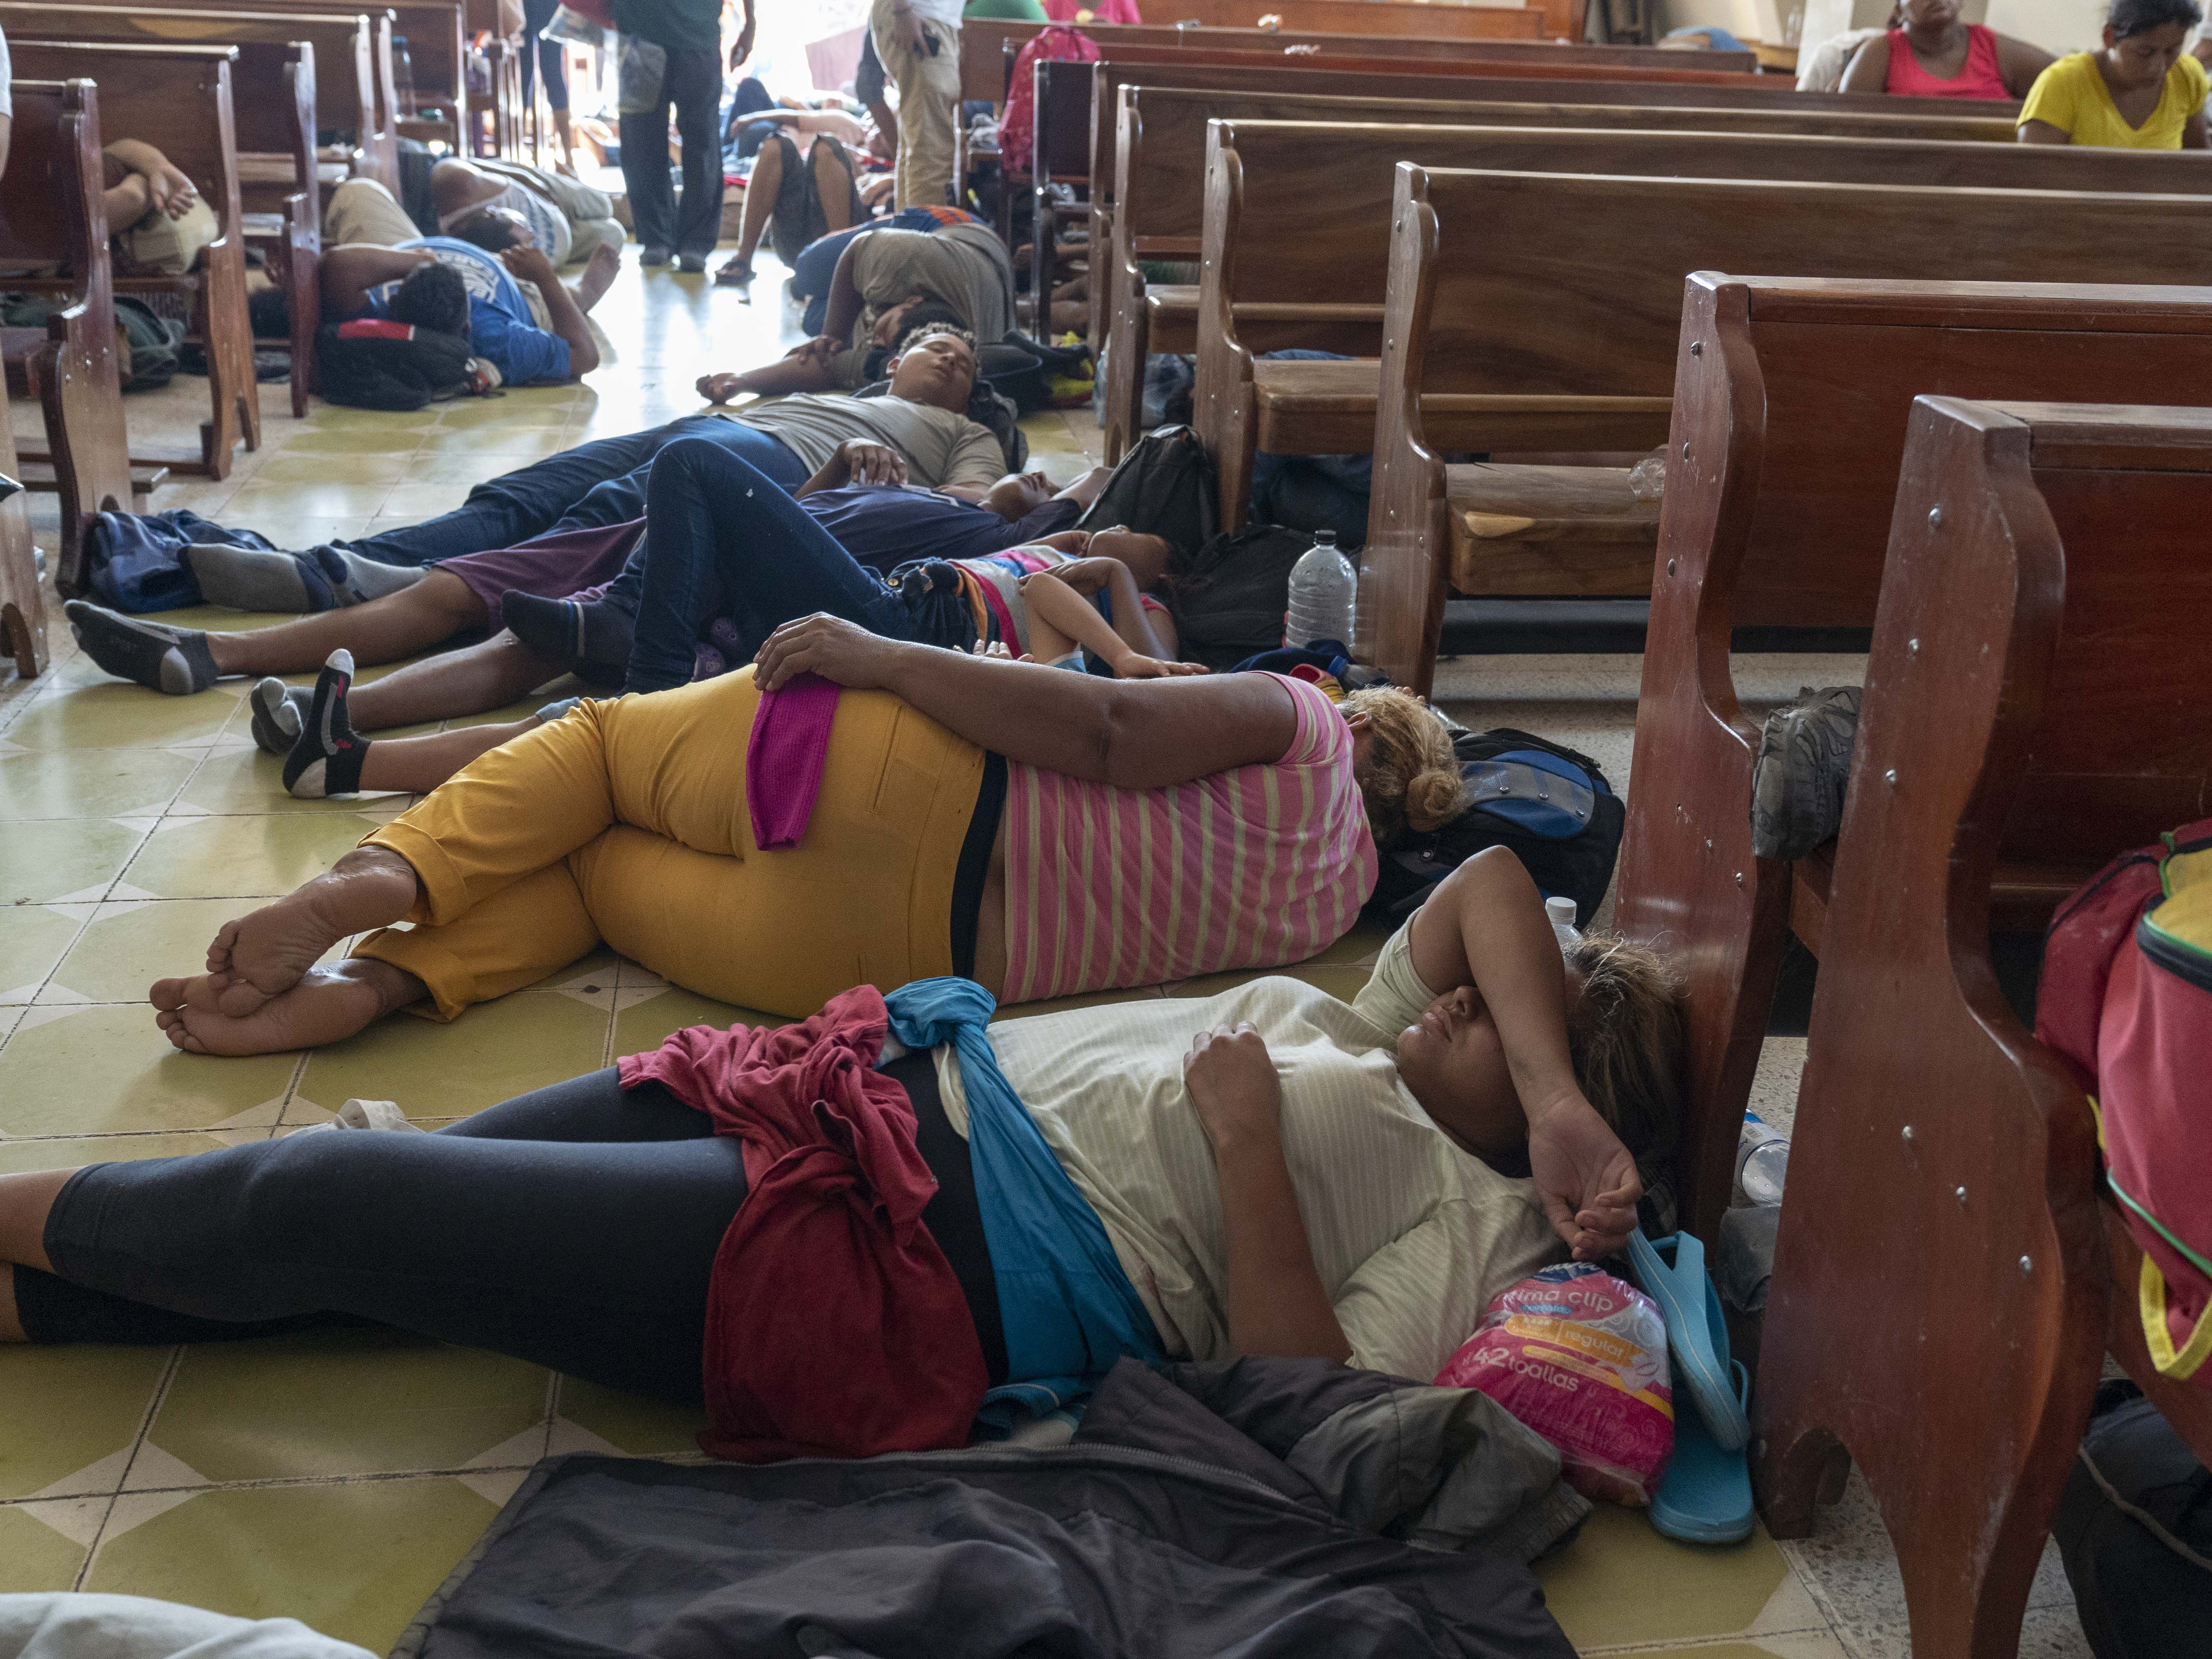 Thousands of migrants from Honduras and other Central American countries traveling in a caravan reached the state of Oaxaca on Oct. 27, after crossing through the entire state of Chiapas on their way to the U.S. border.